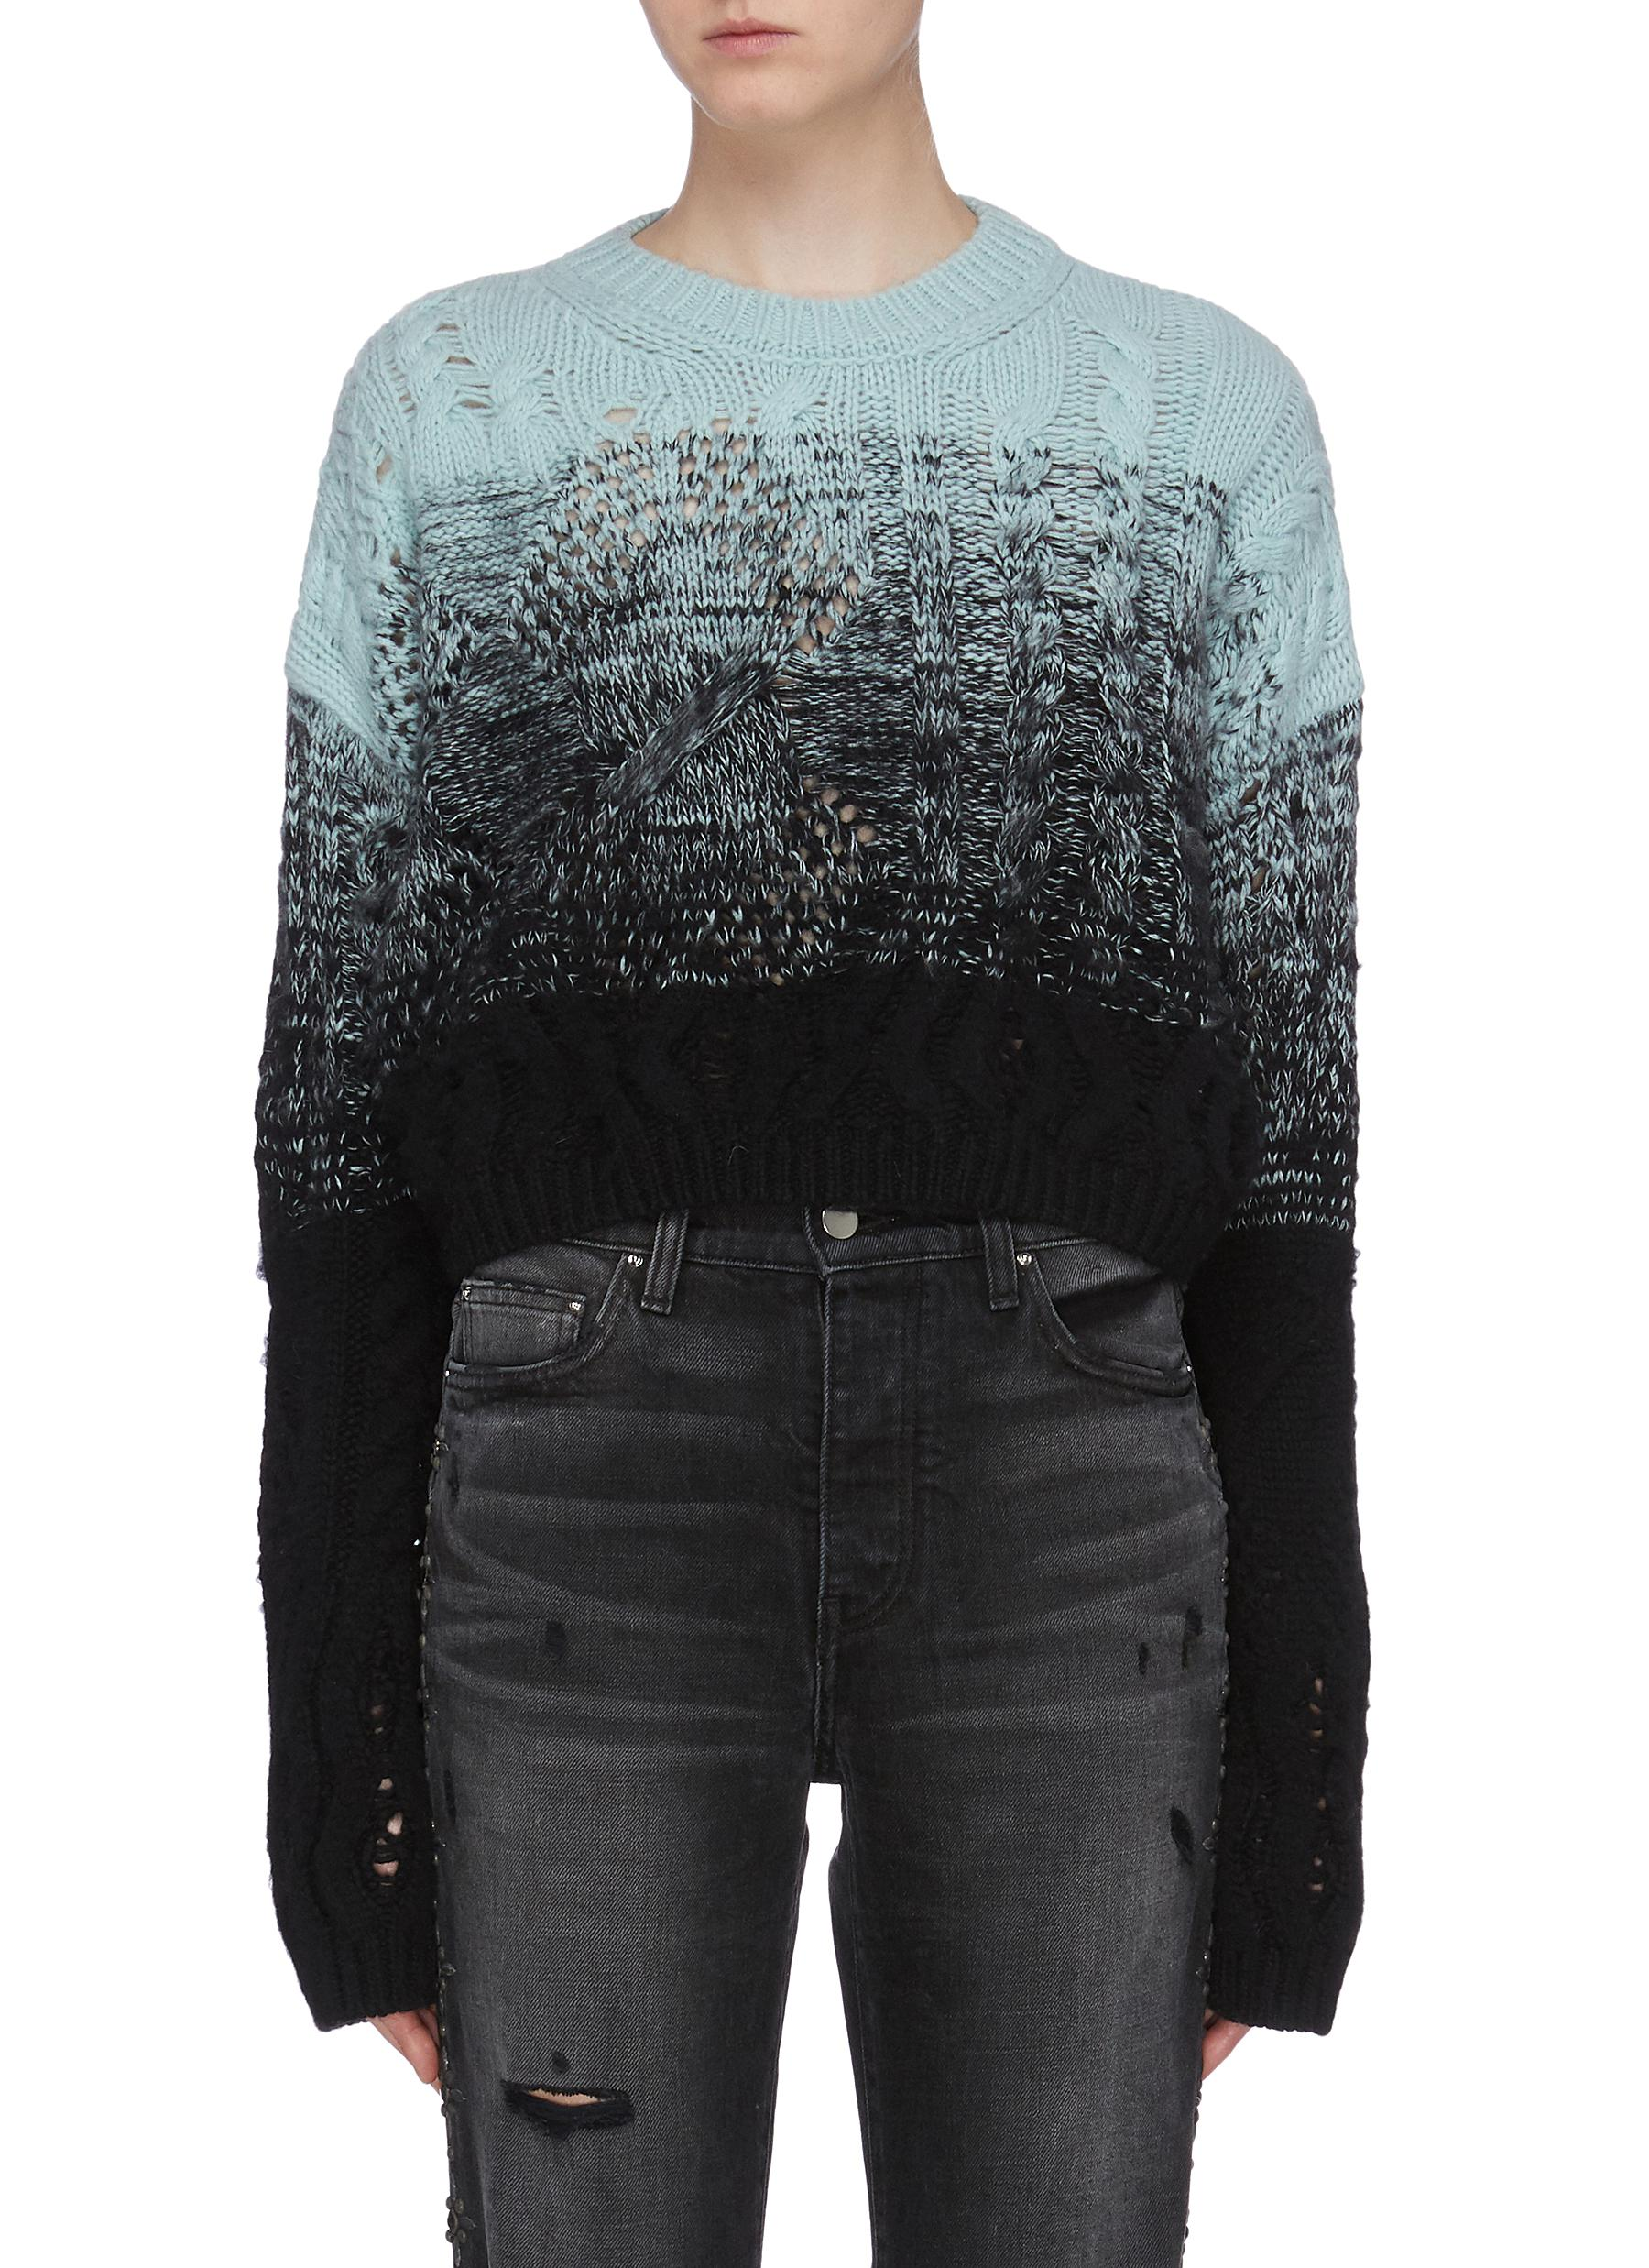 Ombre oversized cropped cable knit sweater by Amiri